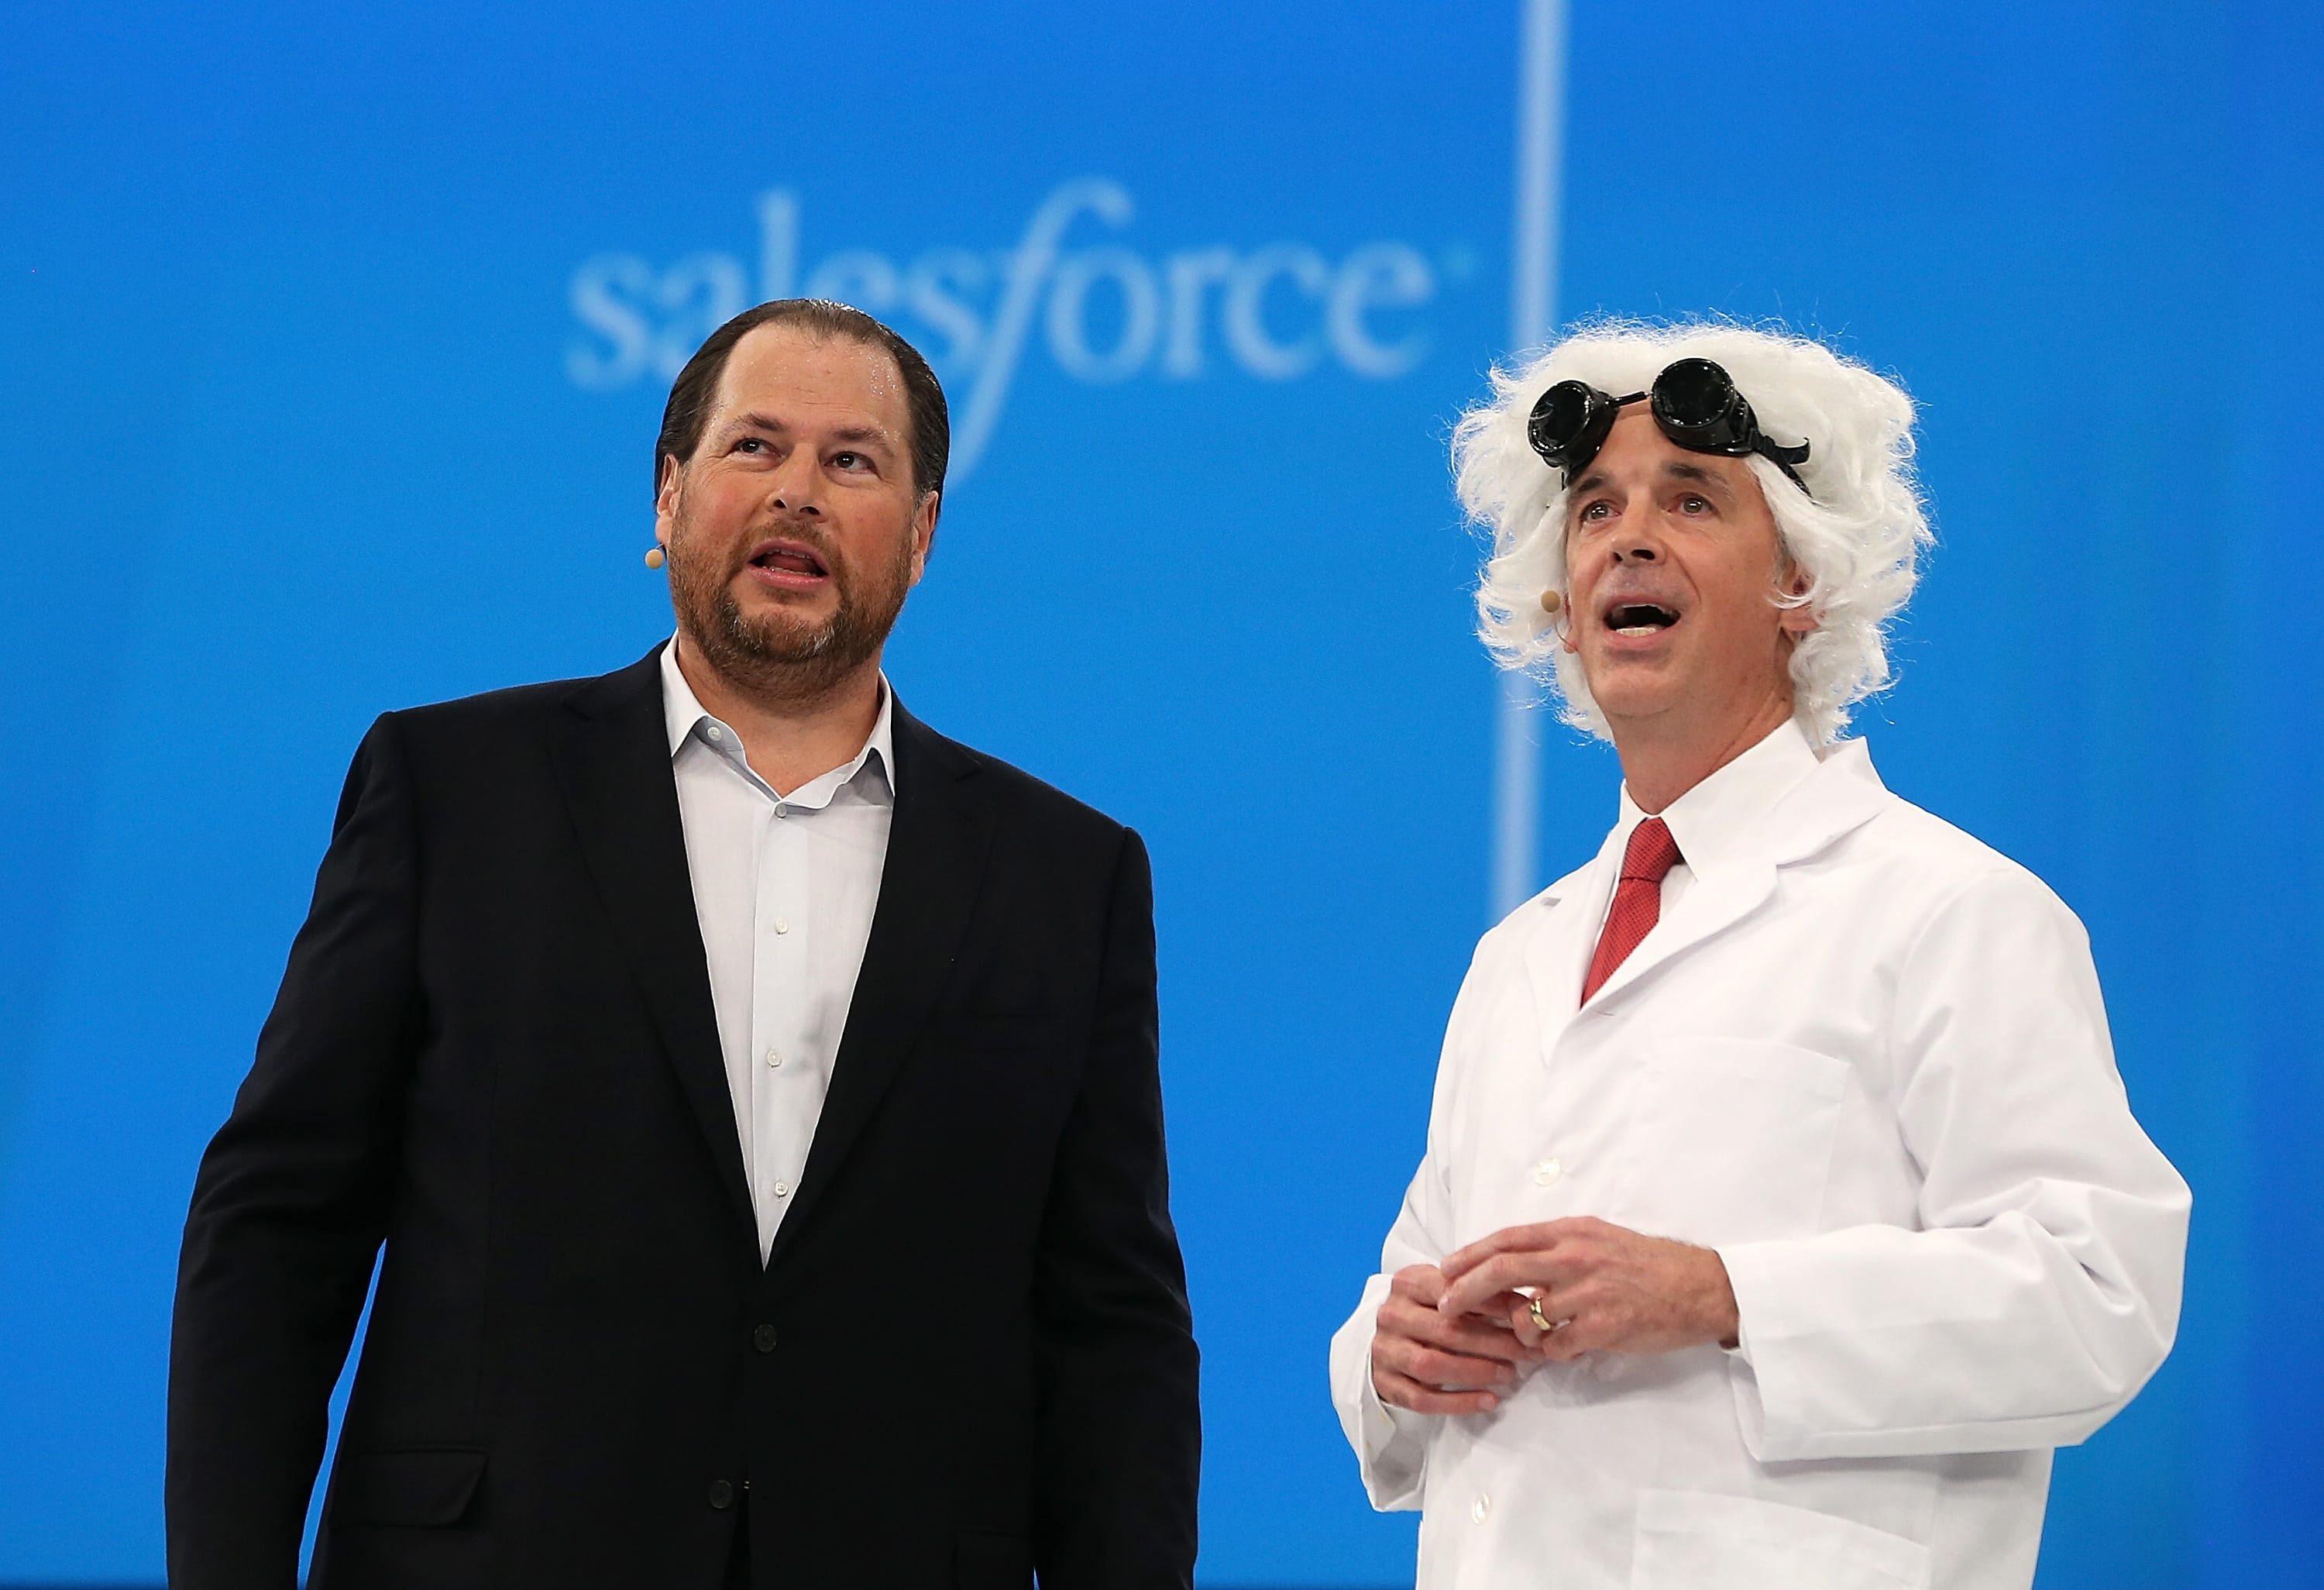 Salesforce stock drops sharply after announcing it will buy Tableau for $15.3 billion, the biggest acquisition in its history